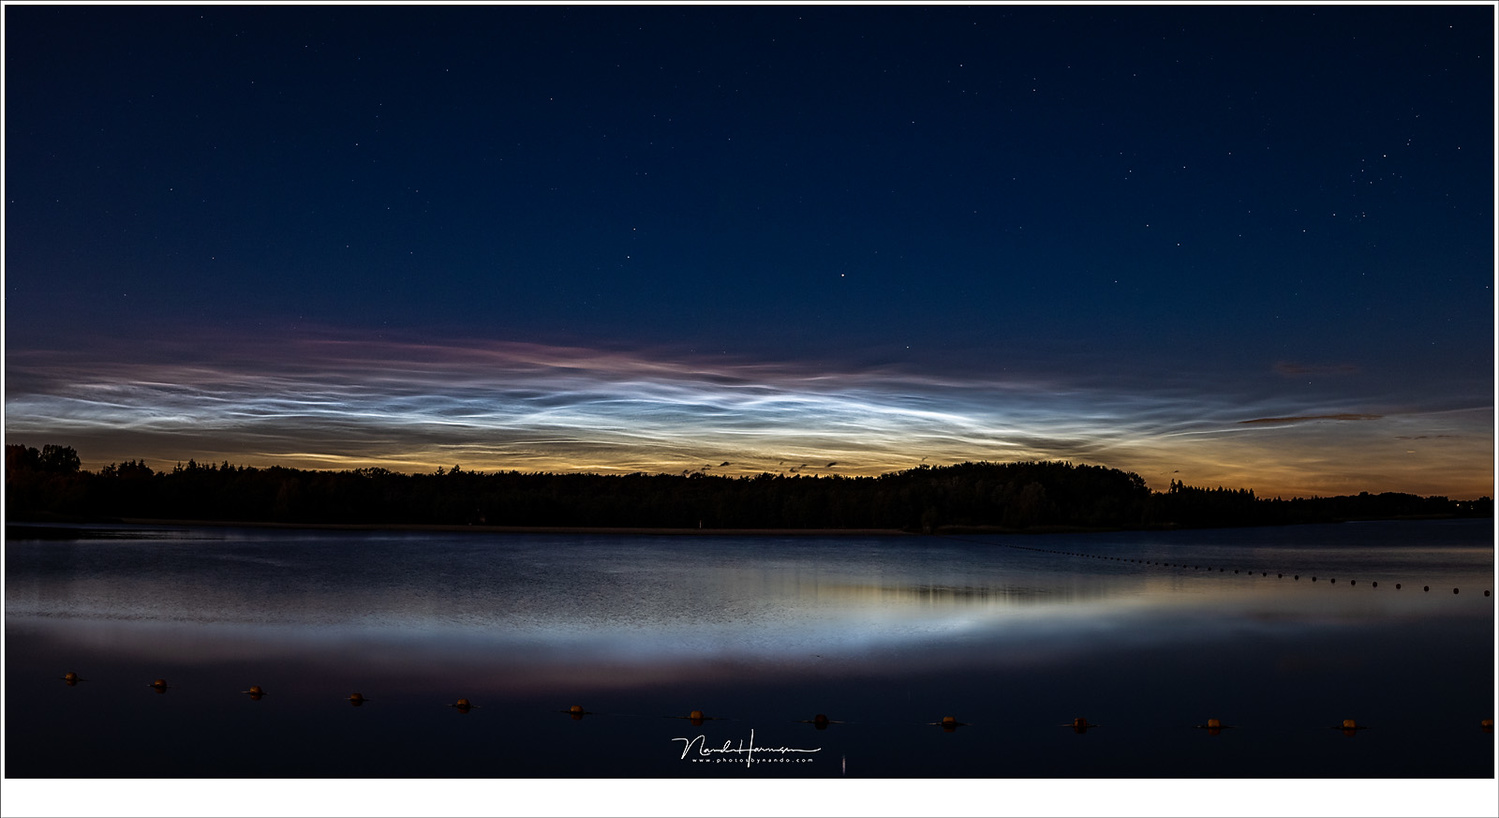 A clear panoramic view at a nearby swimming lake. Twilight colors show at the bottom, and the red glow of the noctilucent clouds appears at the top.  Stars are visible through the clouds and in the night sky. (Lumix DC-S1 + 49mm | ISO1600 | f/5,6 | 4 sec)